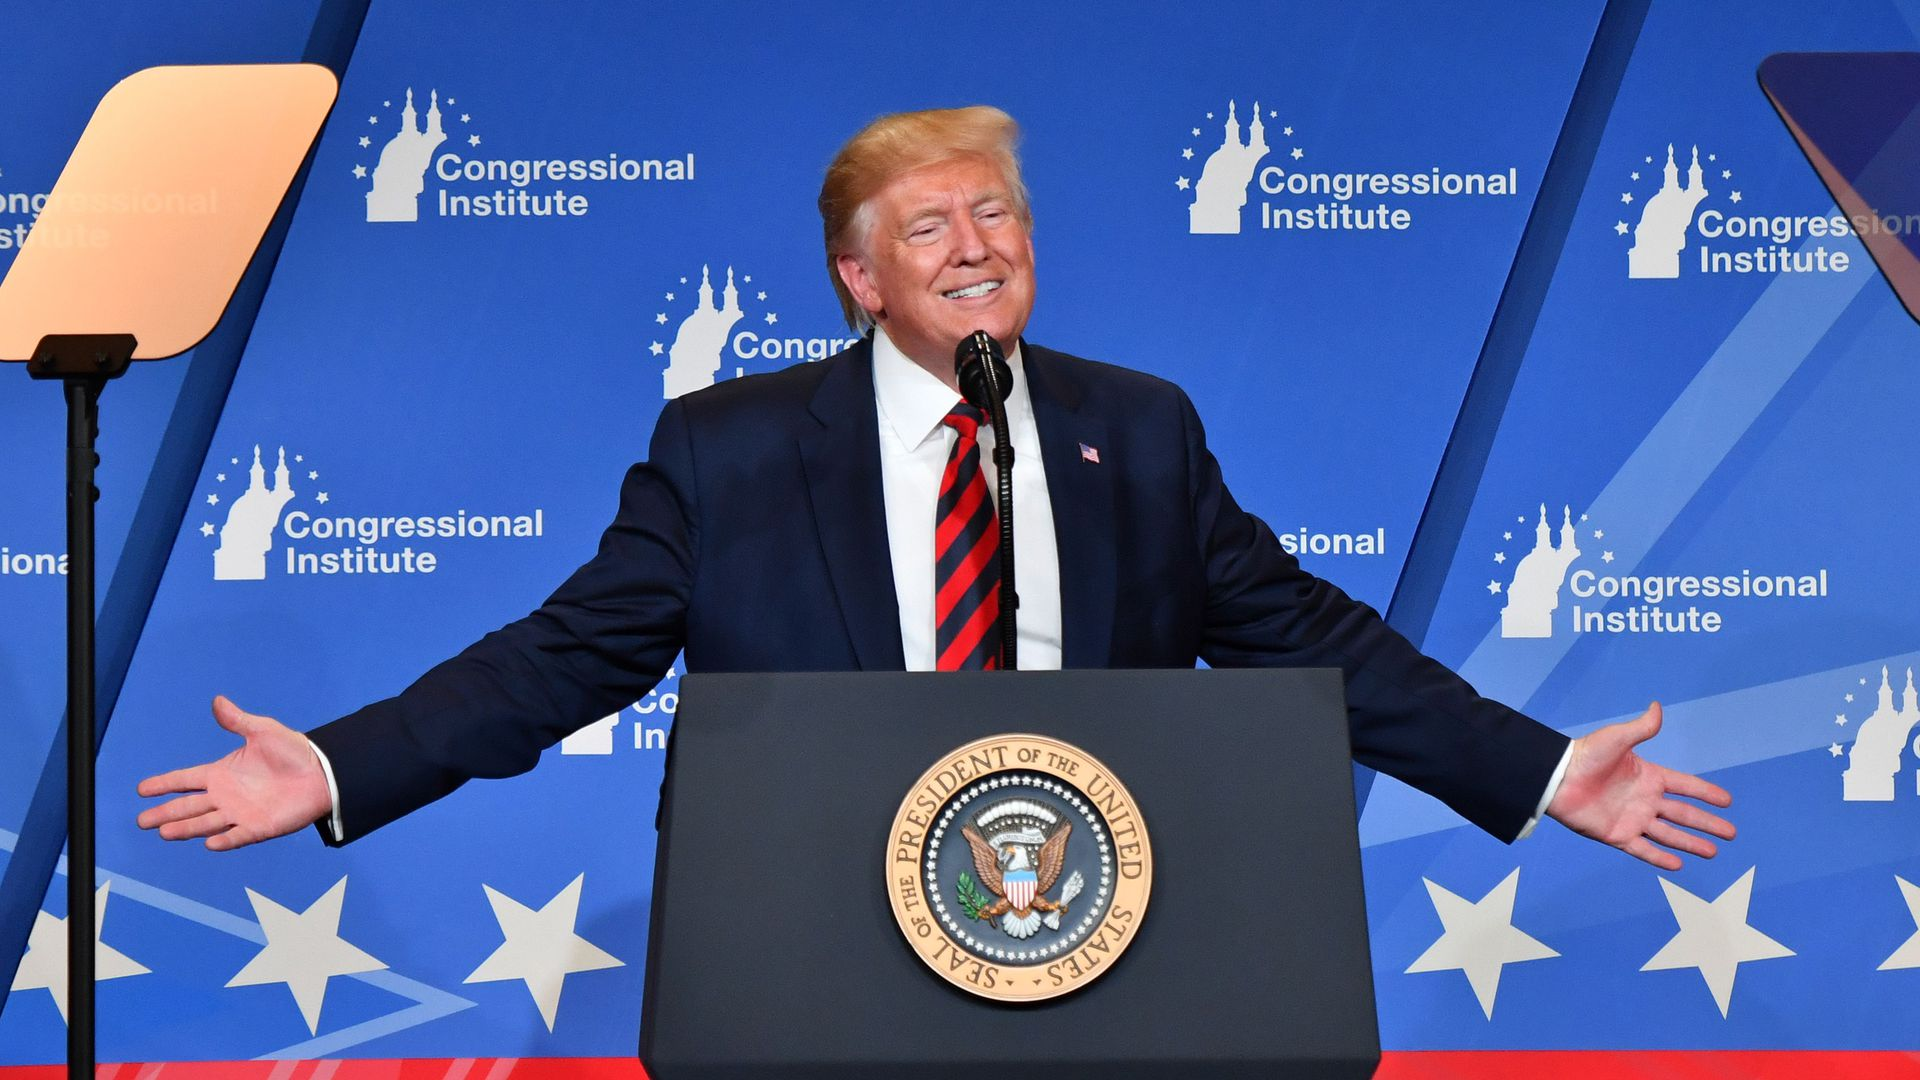 President Donald Trump delivers remarks during the 2019 House Republican Conference Member Retreat Dinner in Baltimore, Maryland on September 12